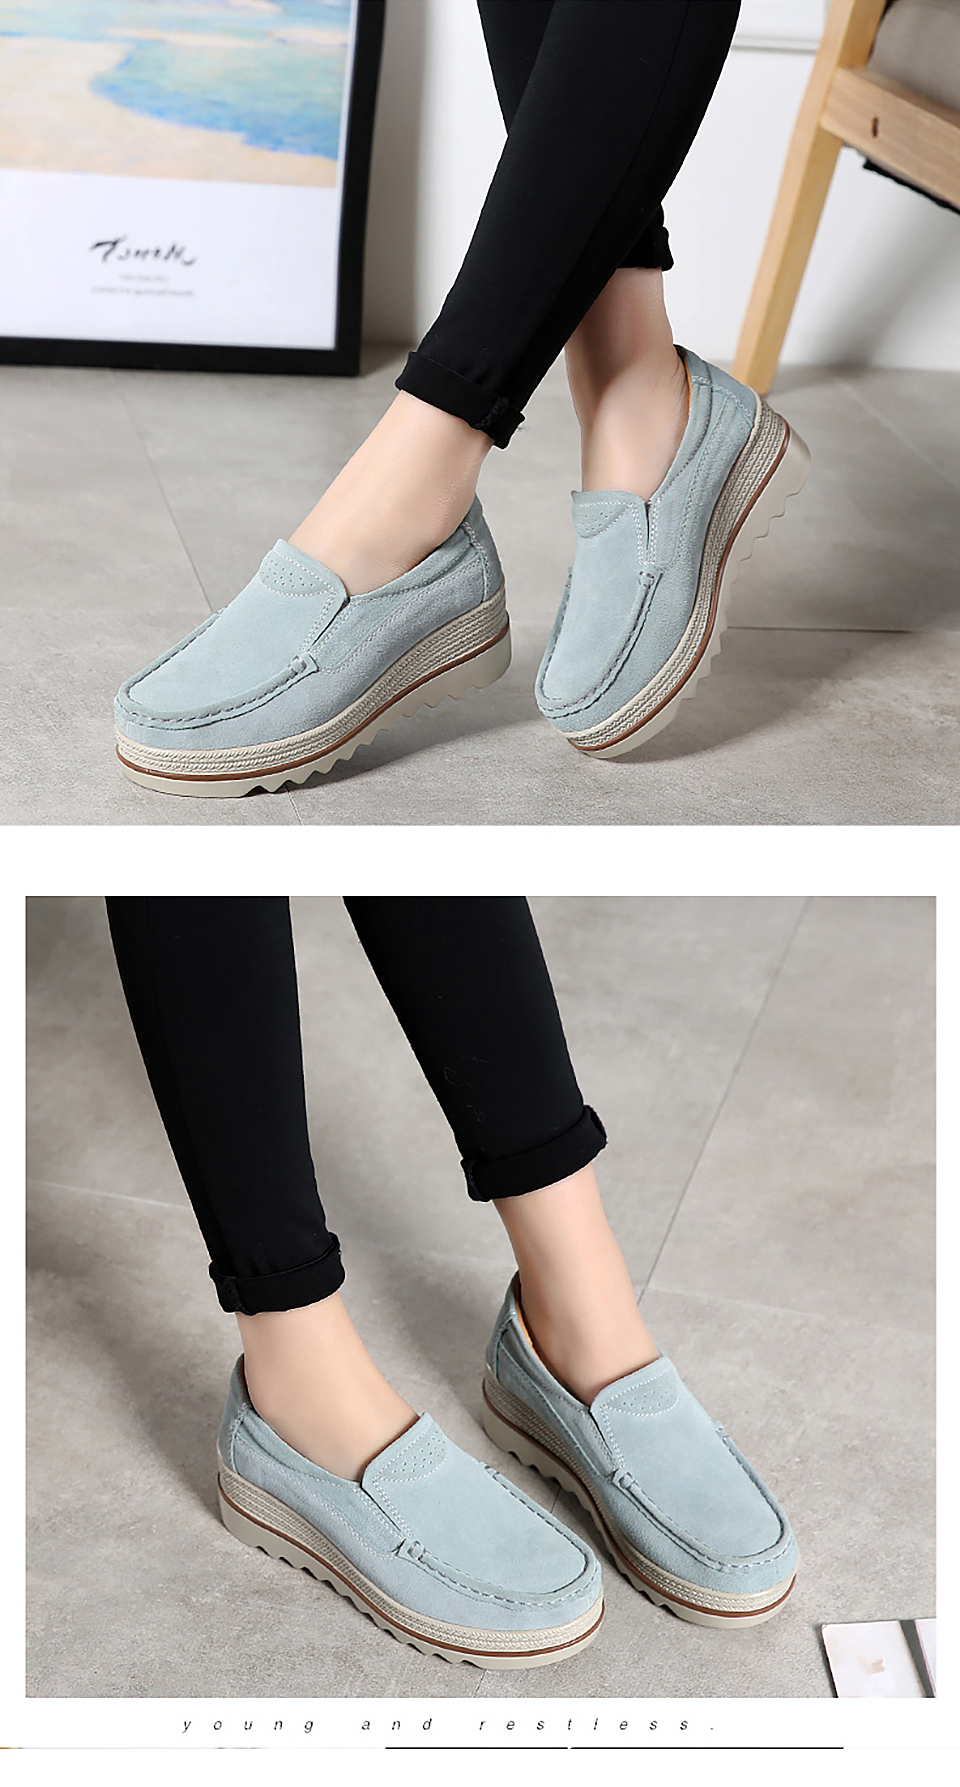 HTB1OaufOhnaK1RjSZFtq6zC2VXas 2019 Spring Women Flats Shoes Platform Sneakers Slip On Flats Leather Suede Ladies Loafers Moccasins Casual Shoes Women Creepers